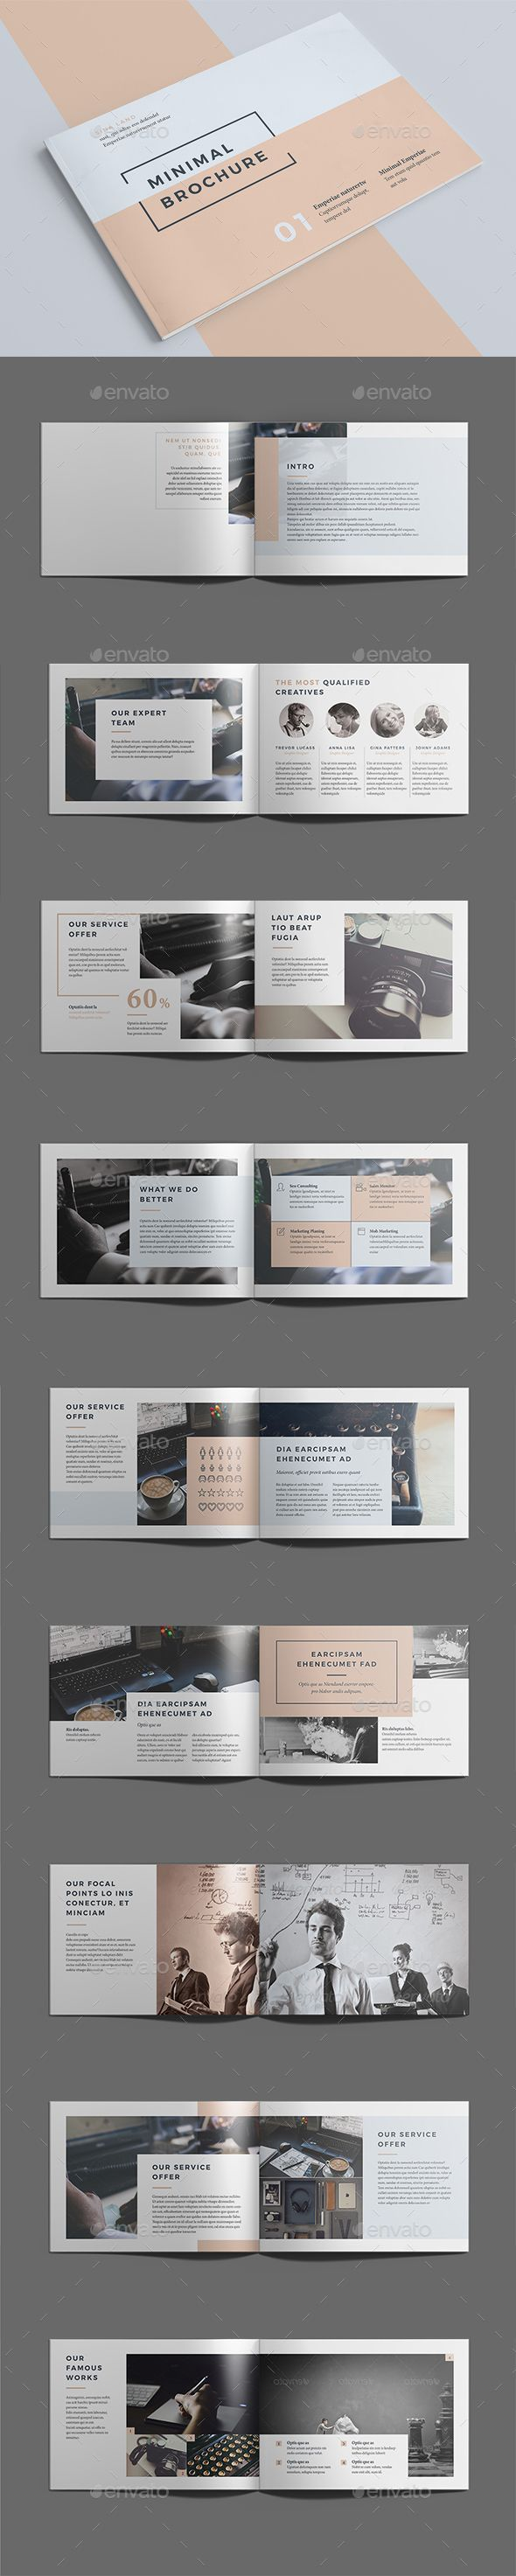 minimal brochure vol ii - Booklet Design Ideas